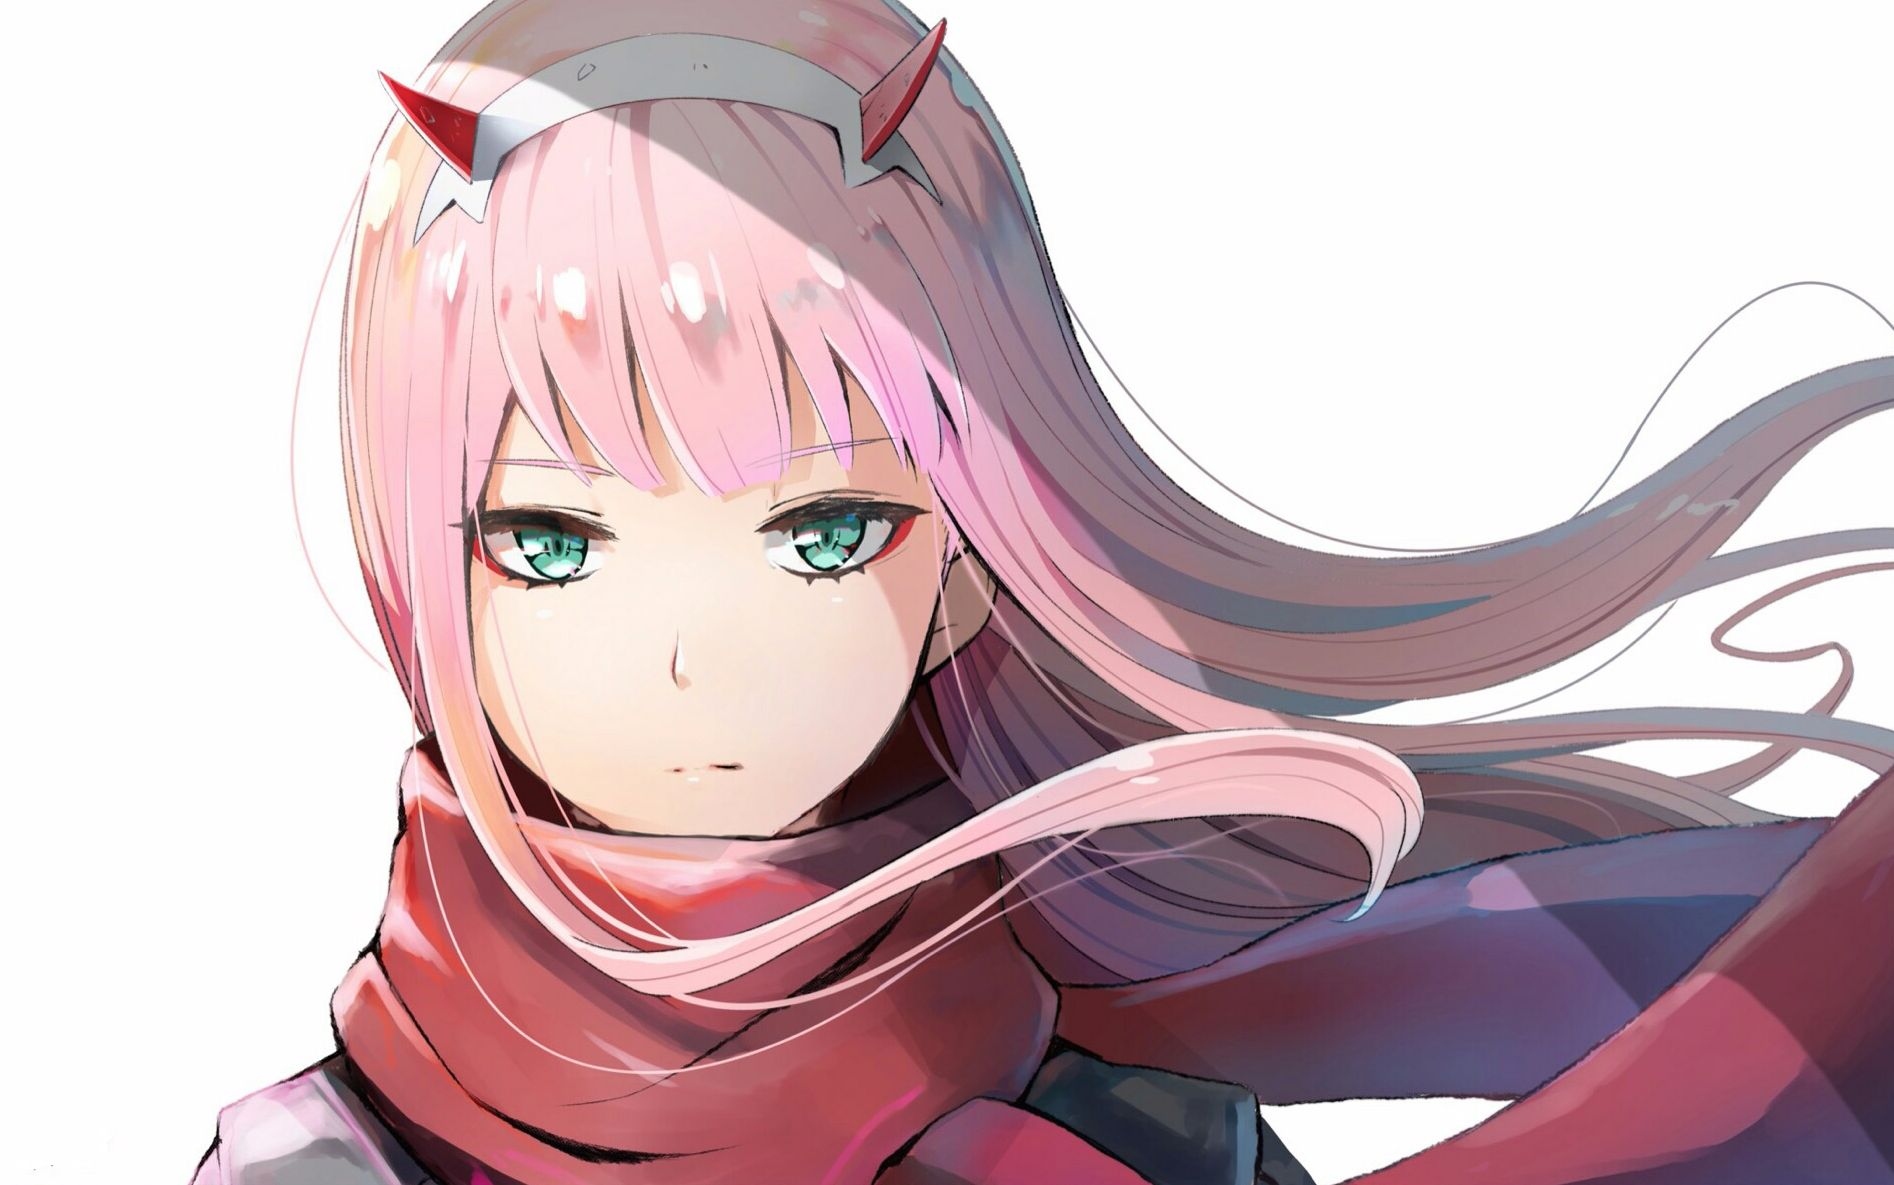 Darling in the franxx shikata ga nai episode 18 - 5 7